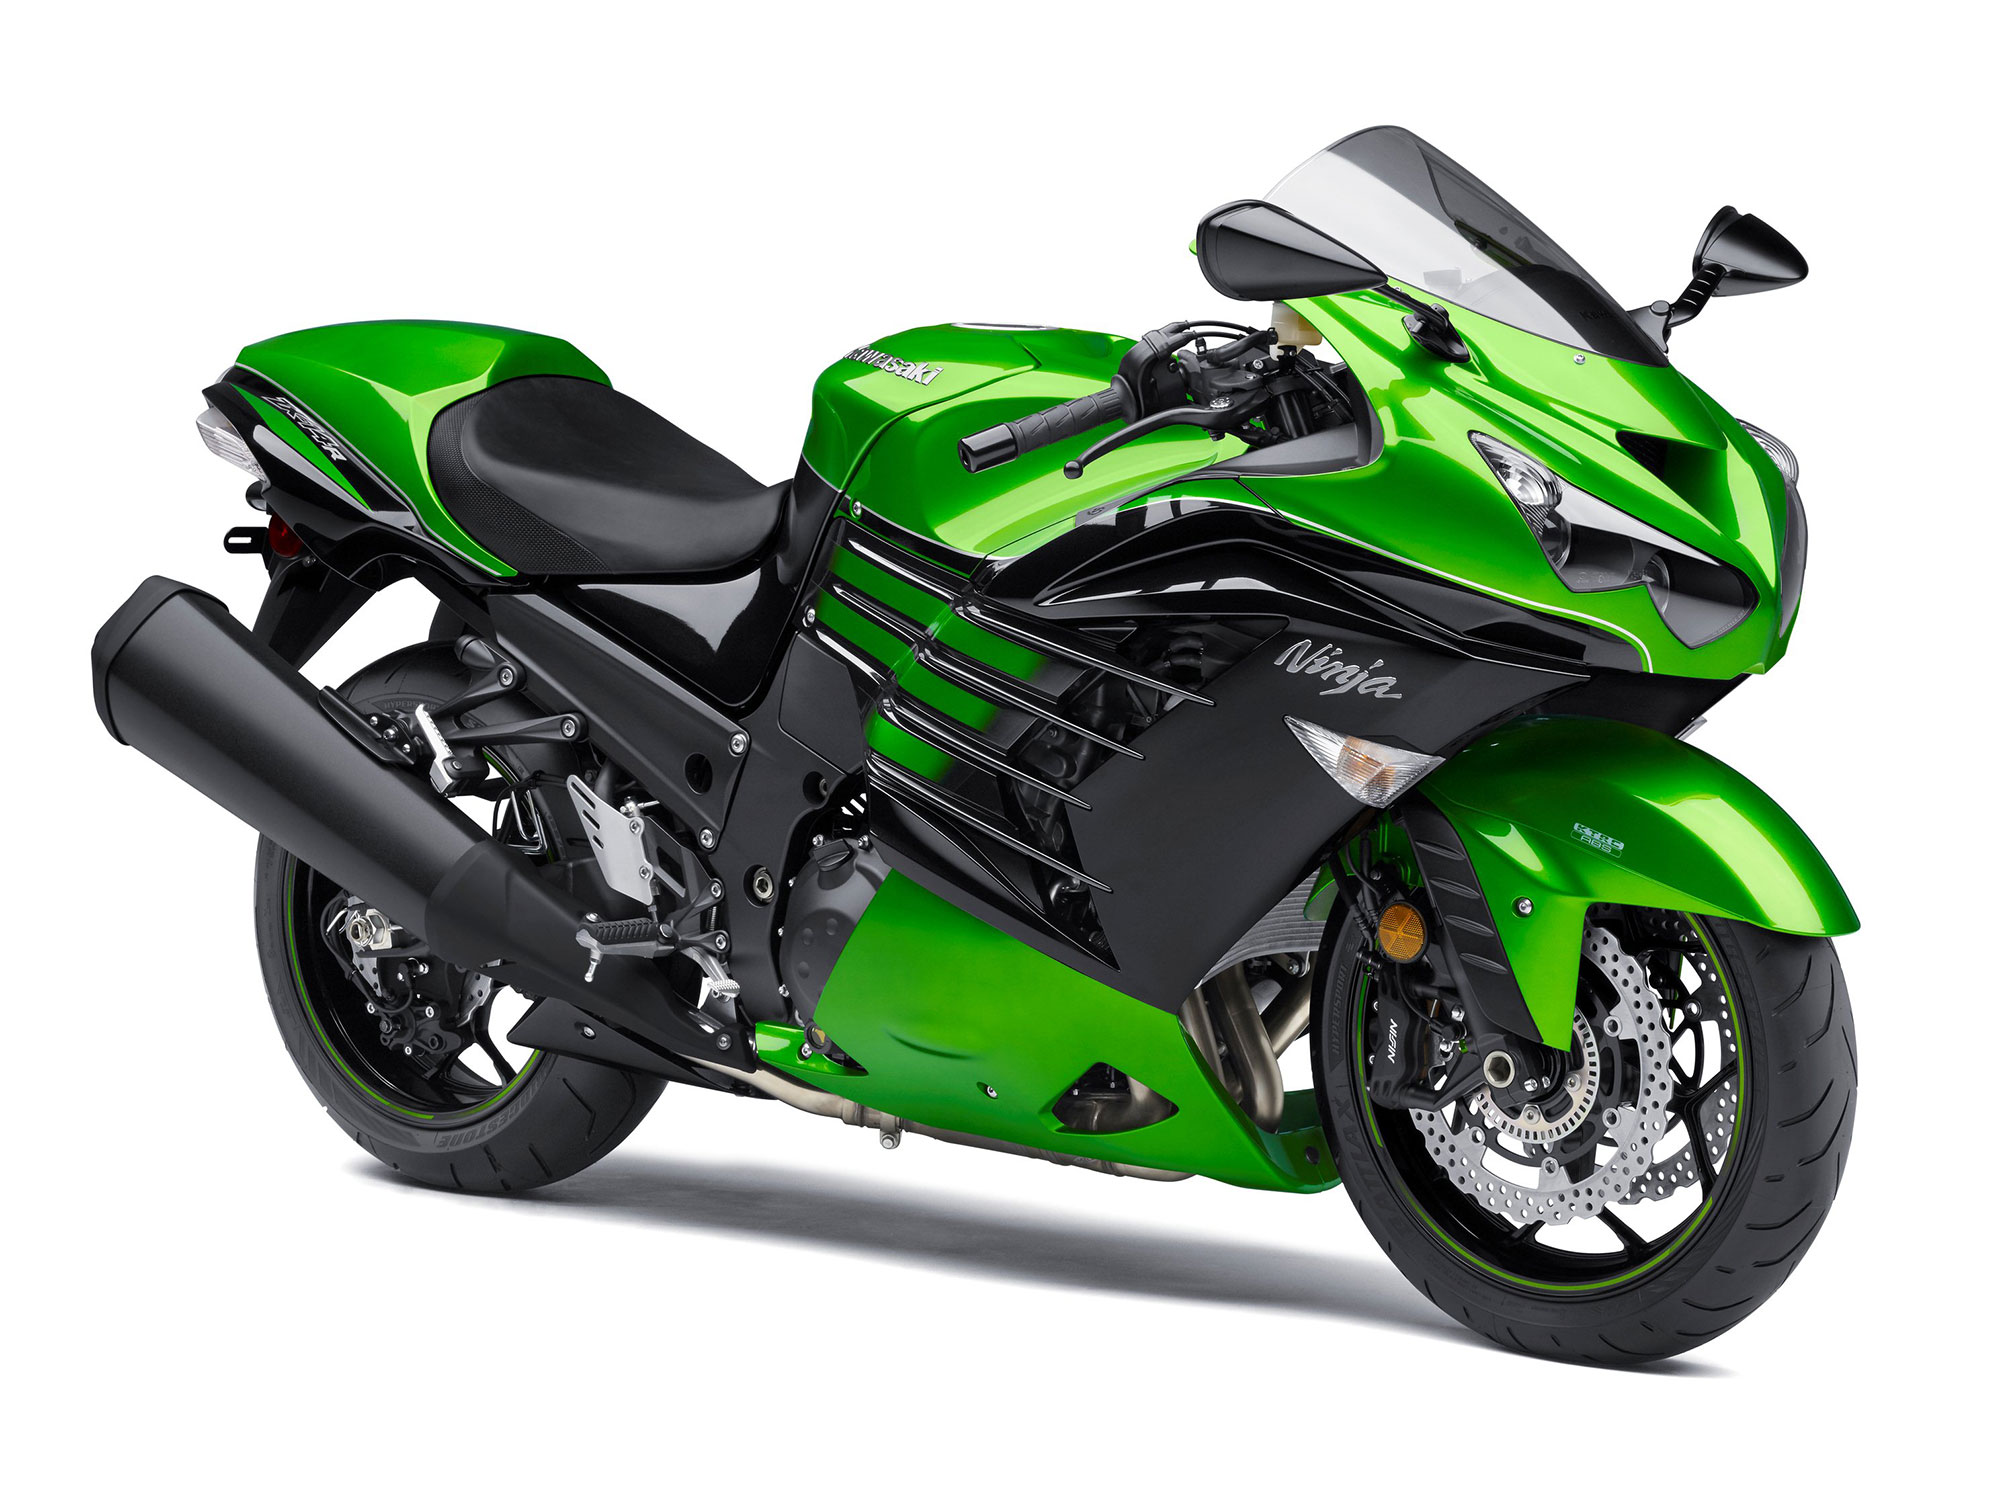 Nine fastest Kawasaki bikes of all time - BikesRepublic